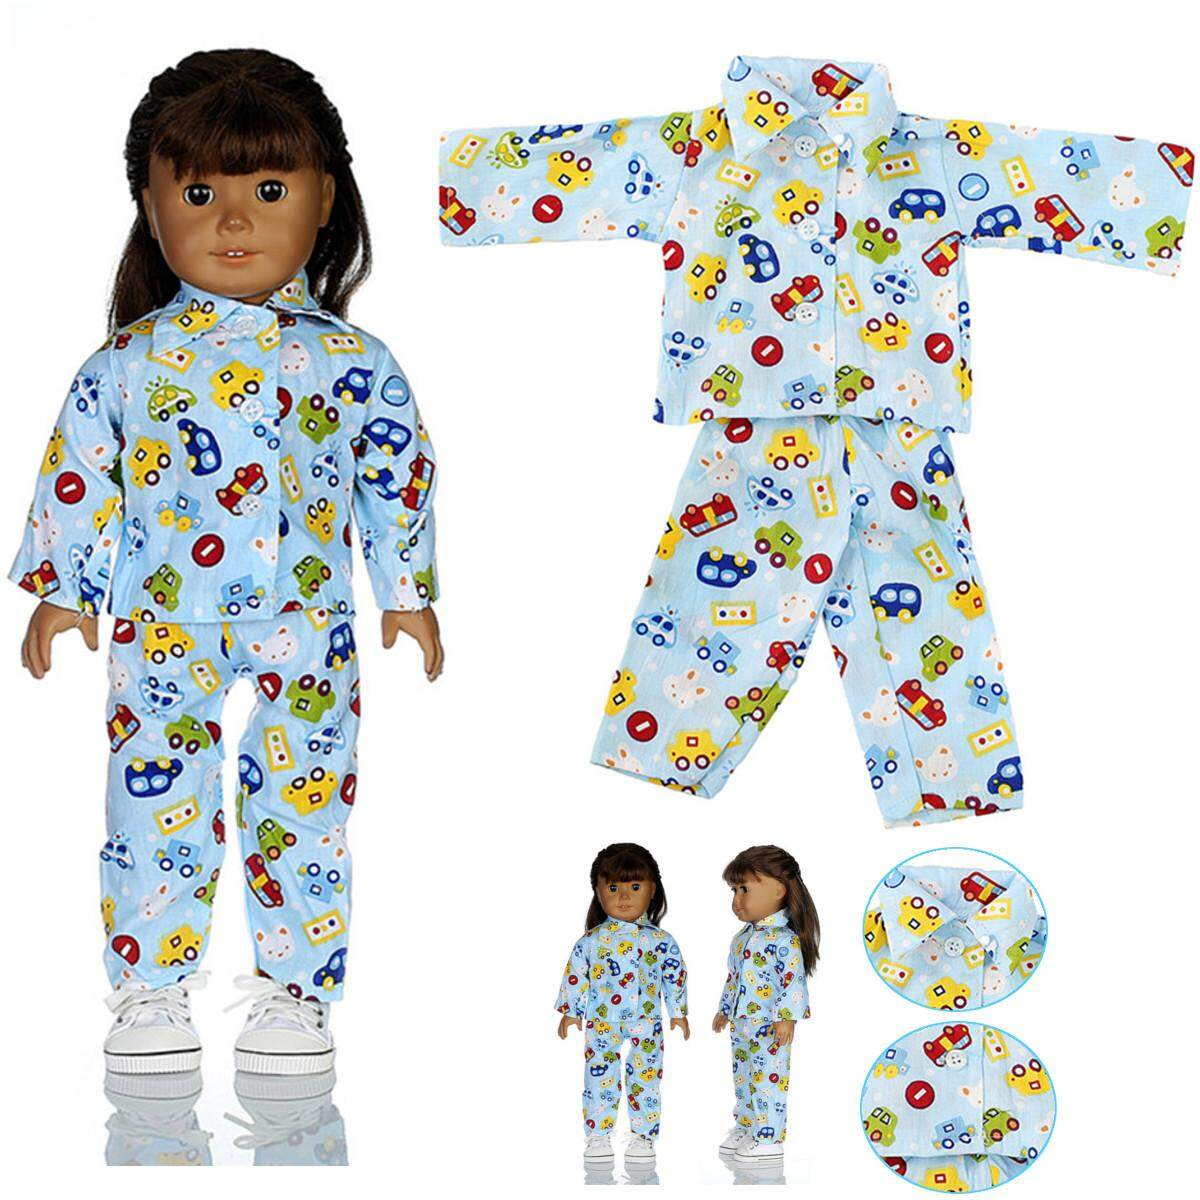 b96a138466 Blue Doll Pajamas Nightgown Sleep Clothes Set Fits For 18 American Girl  Dolls By Freebang.